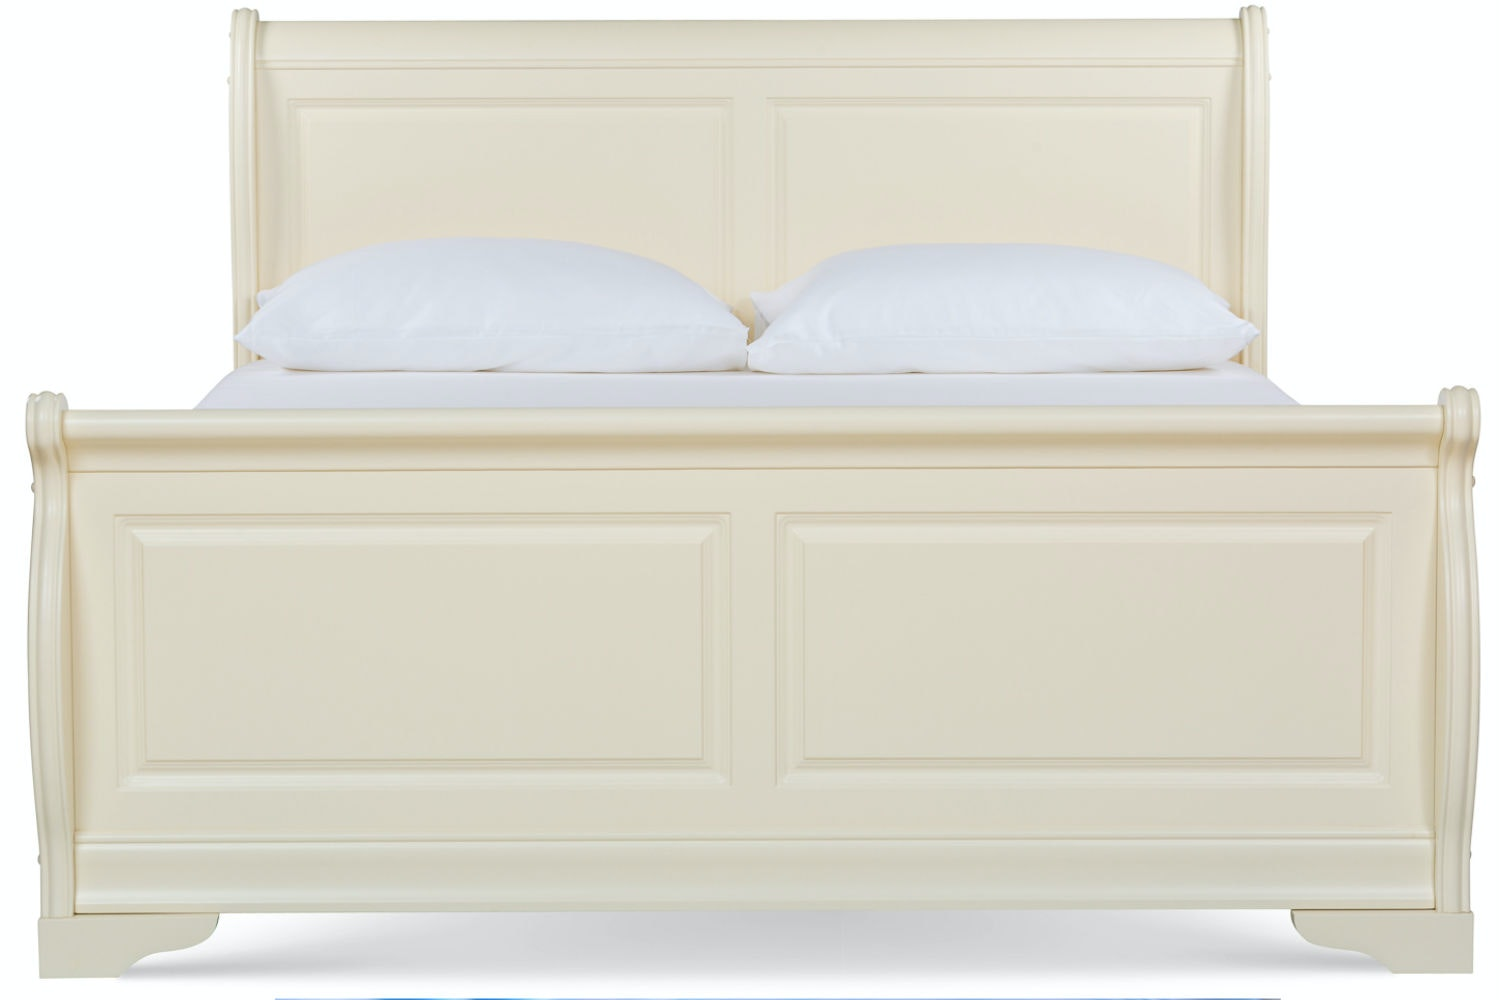 chardonnay-king-bed-frame-cream